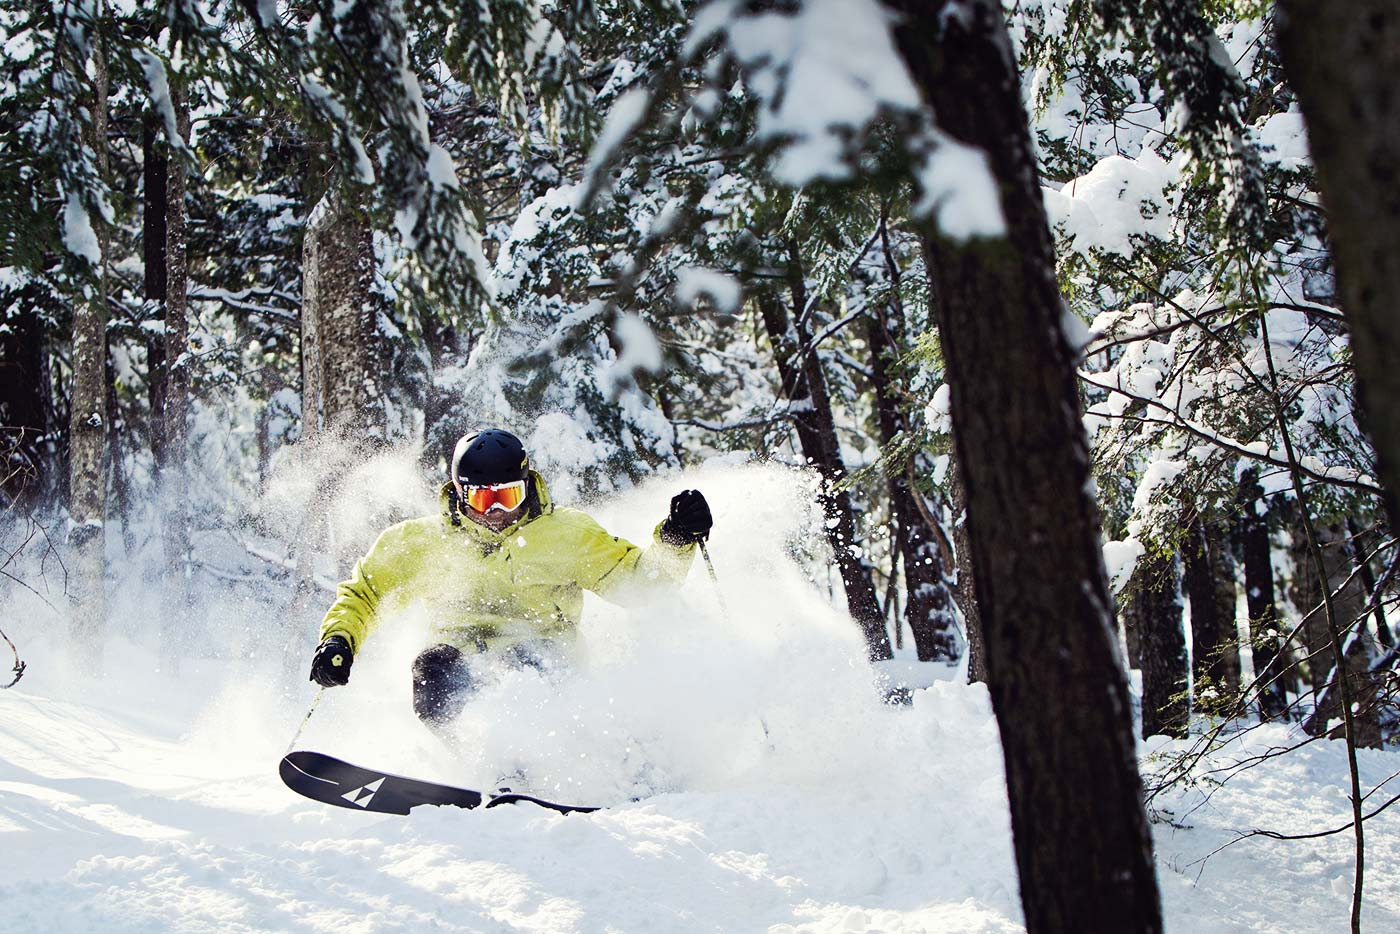 Aggressive Skier in the Woods